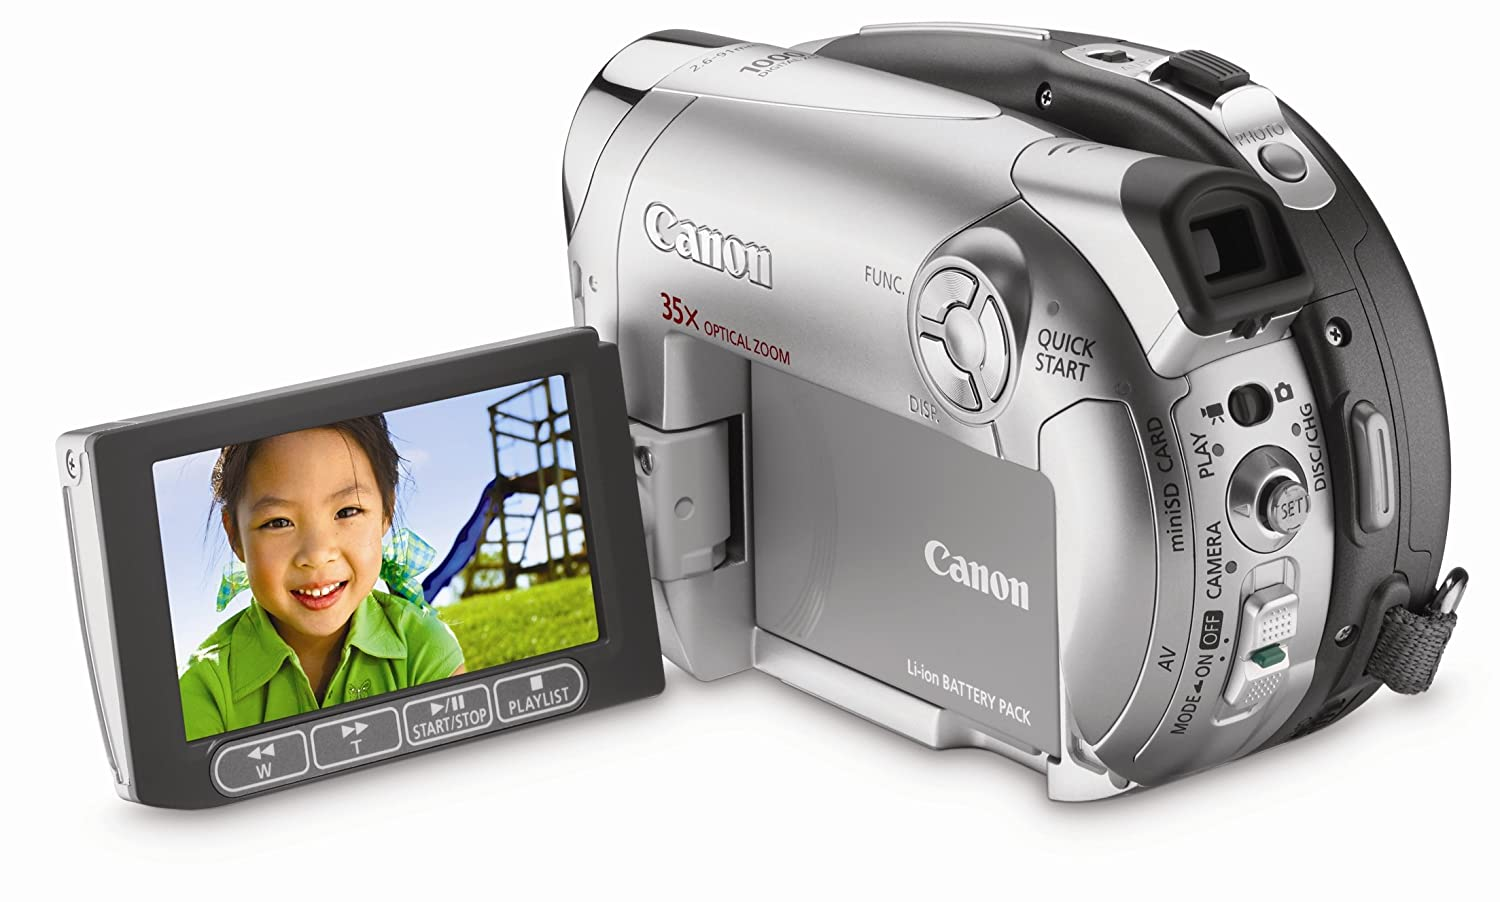 Amazon.com : Canon DC220 DVD Camcorder with 35x Optical Zoom (Discontinued  by Manufacturer